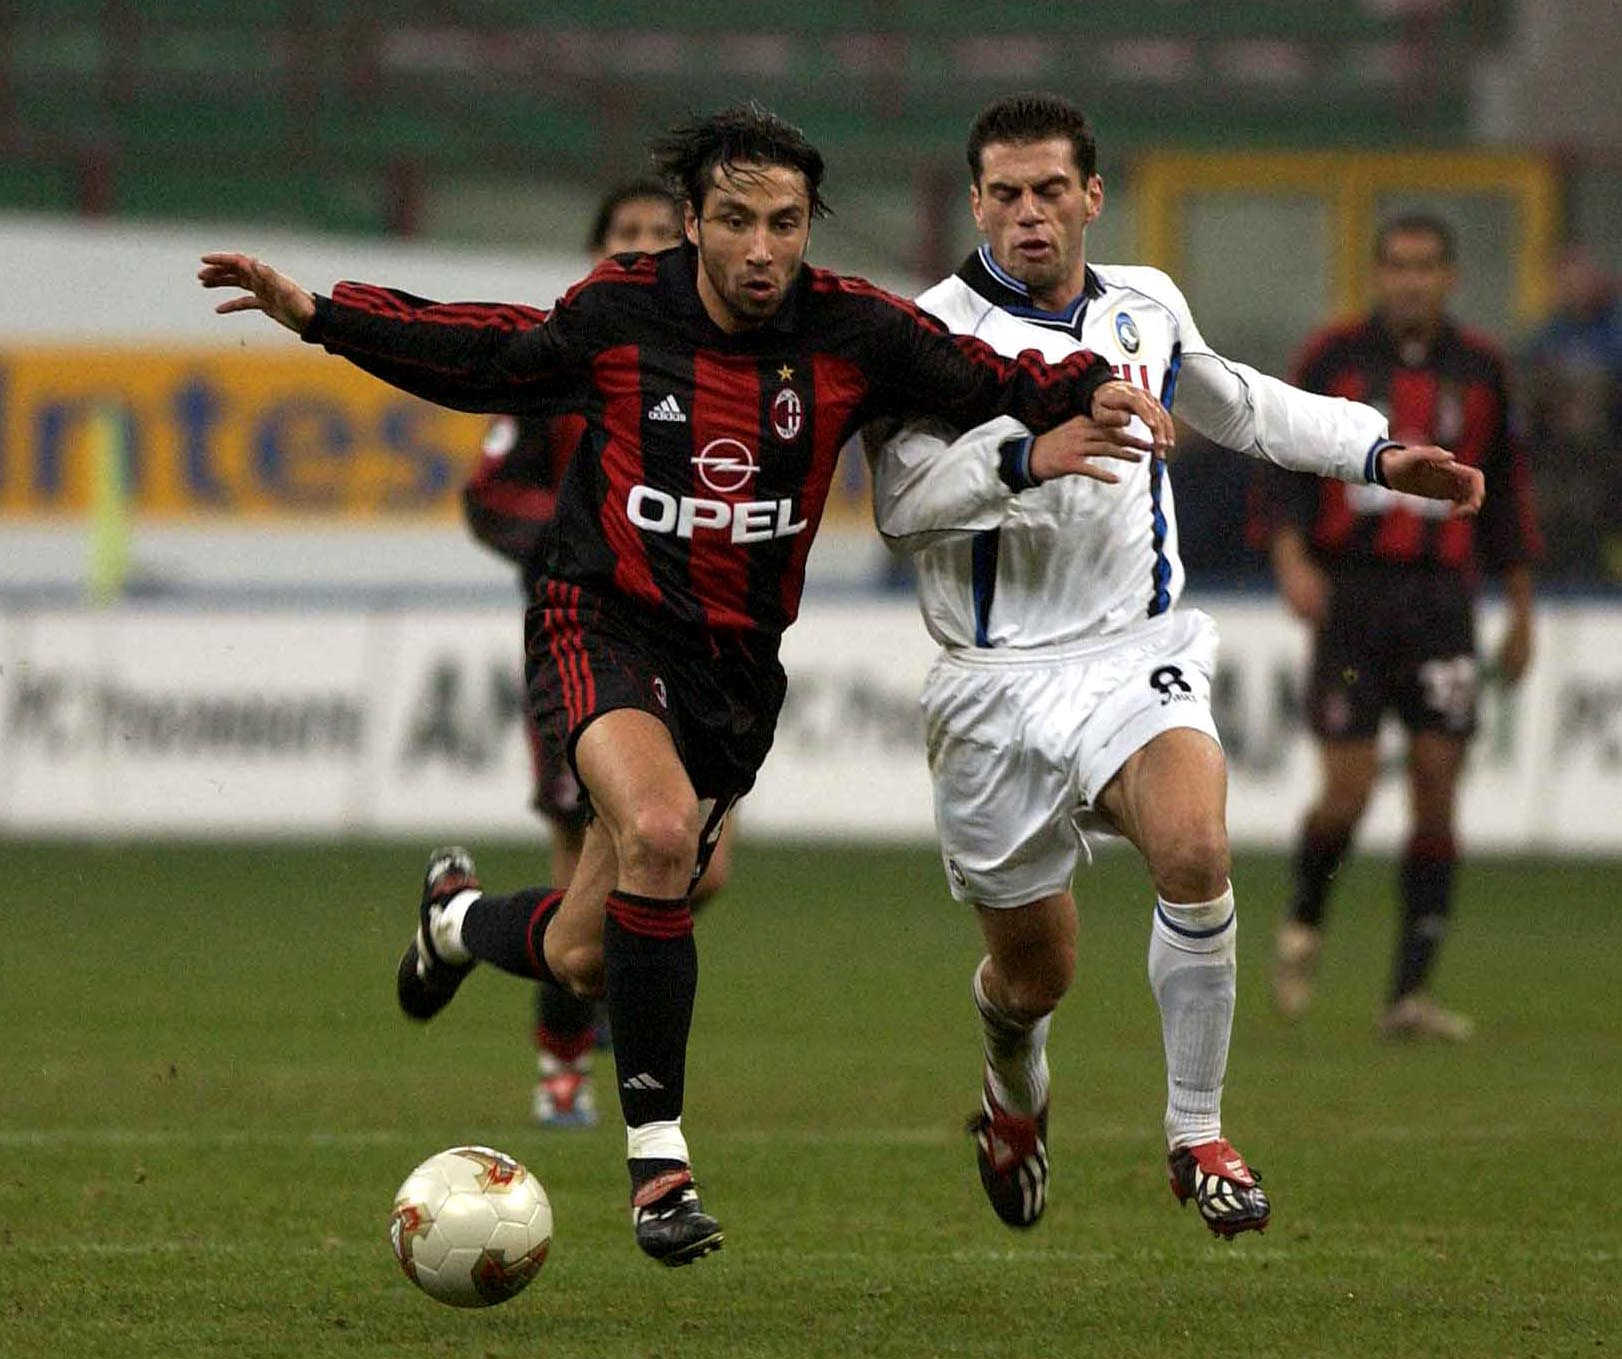 16 Feb 2002: Jose Mari of AC Milan and Luciano Zauri of Atalanta during the Serie A match between AC Milan and Atalanta, played at the San Siro Stadium, Milan. DIGITAL IMAGE Mandatory Credit: Grazia Neri/Getty Images